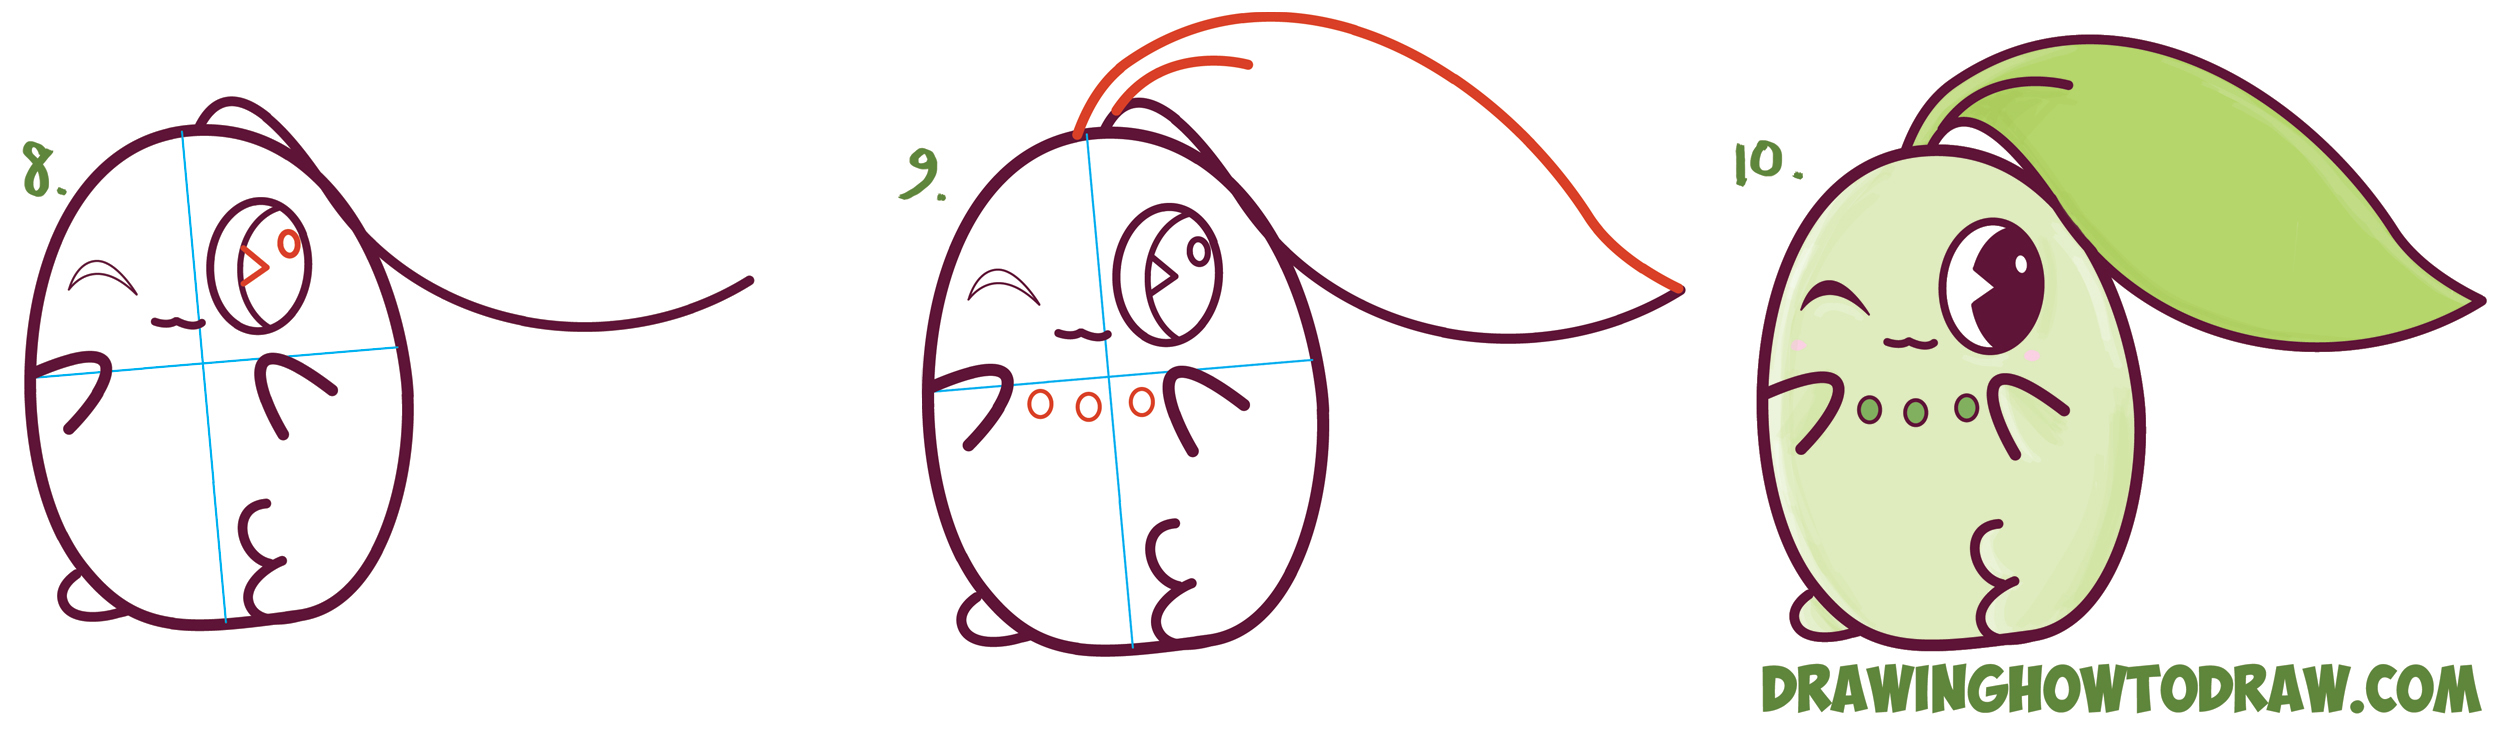 Learn How to Draw Cute / Kawaii / Chibi Chikorita from Pokemon in Simple Steps Drawing Lesson for Kids